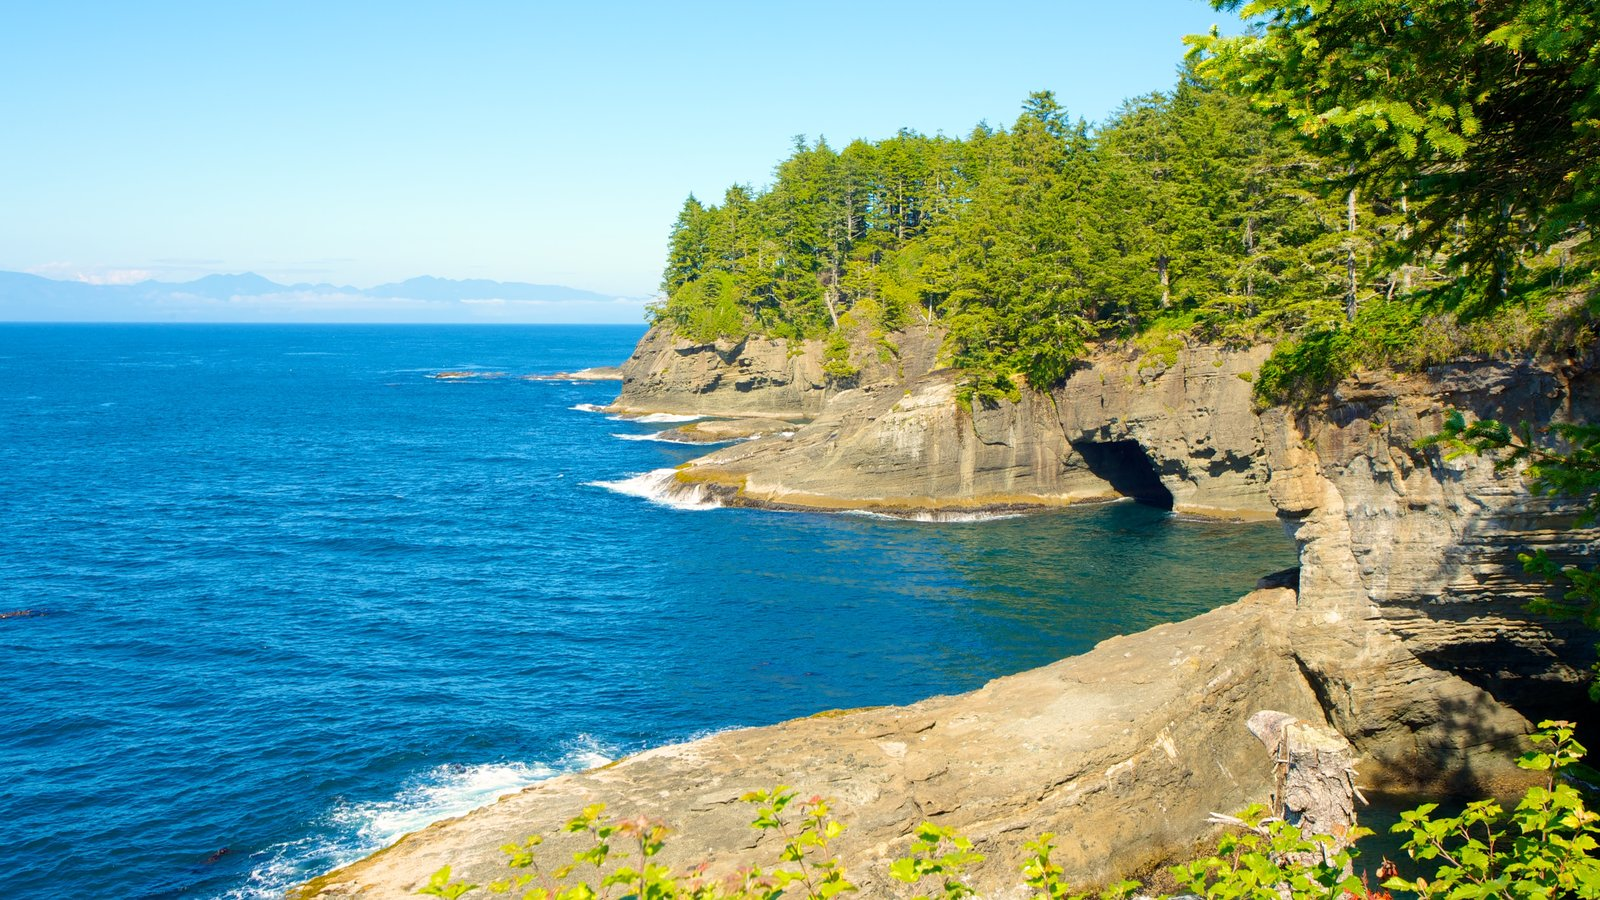 Cape Flattery showing general coastal views, tropical scenes and rocky coastline